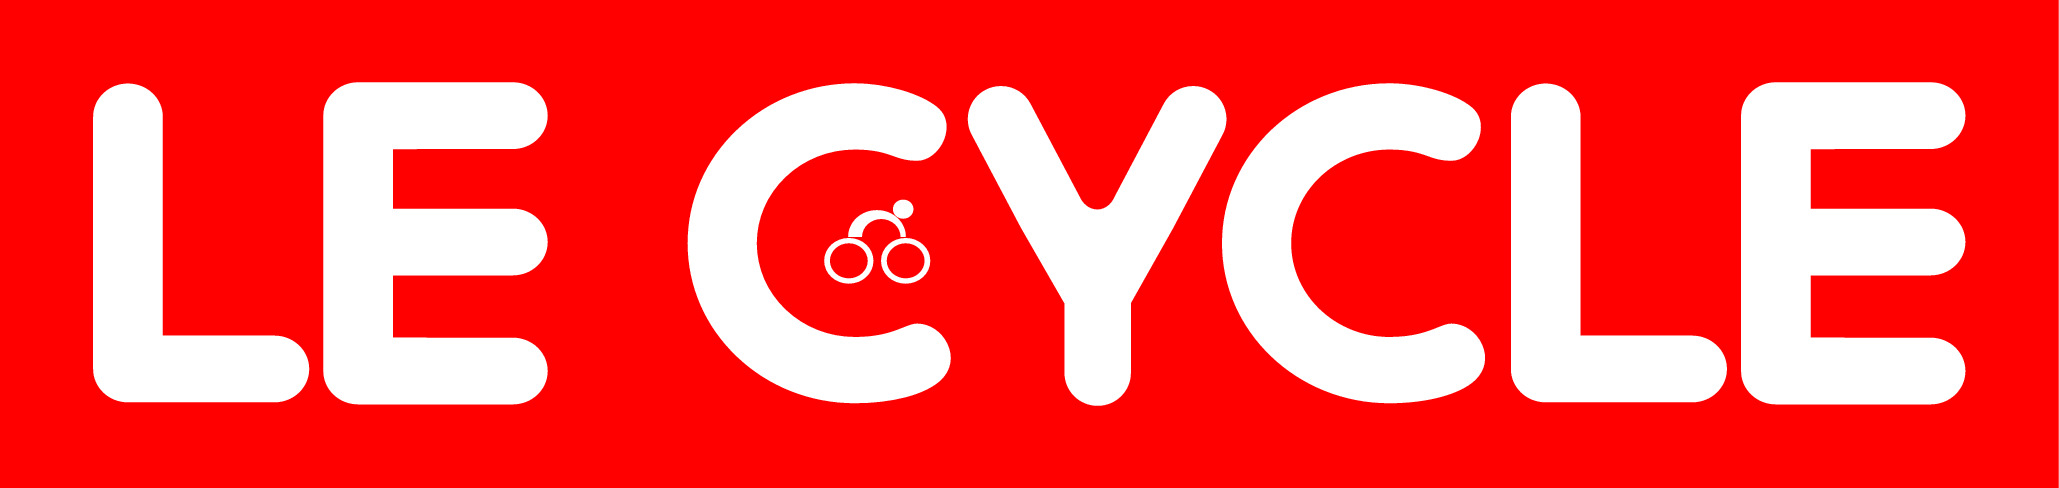 LOGO LE CYCLE 2012 Red blanc